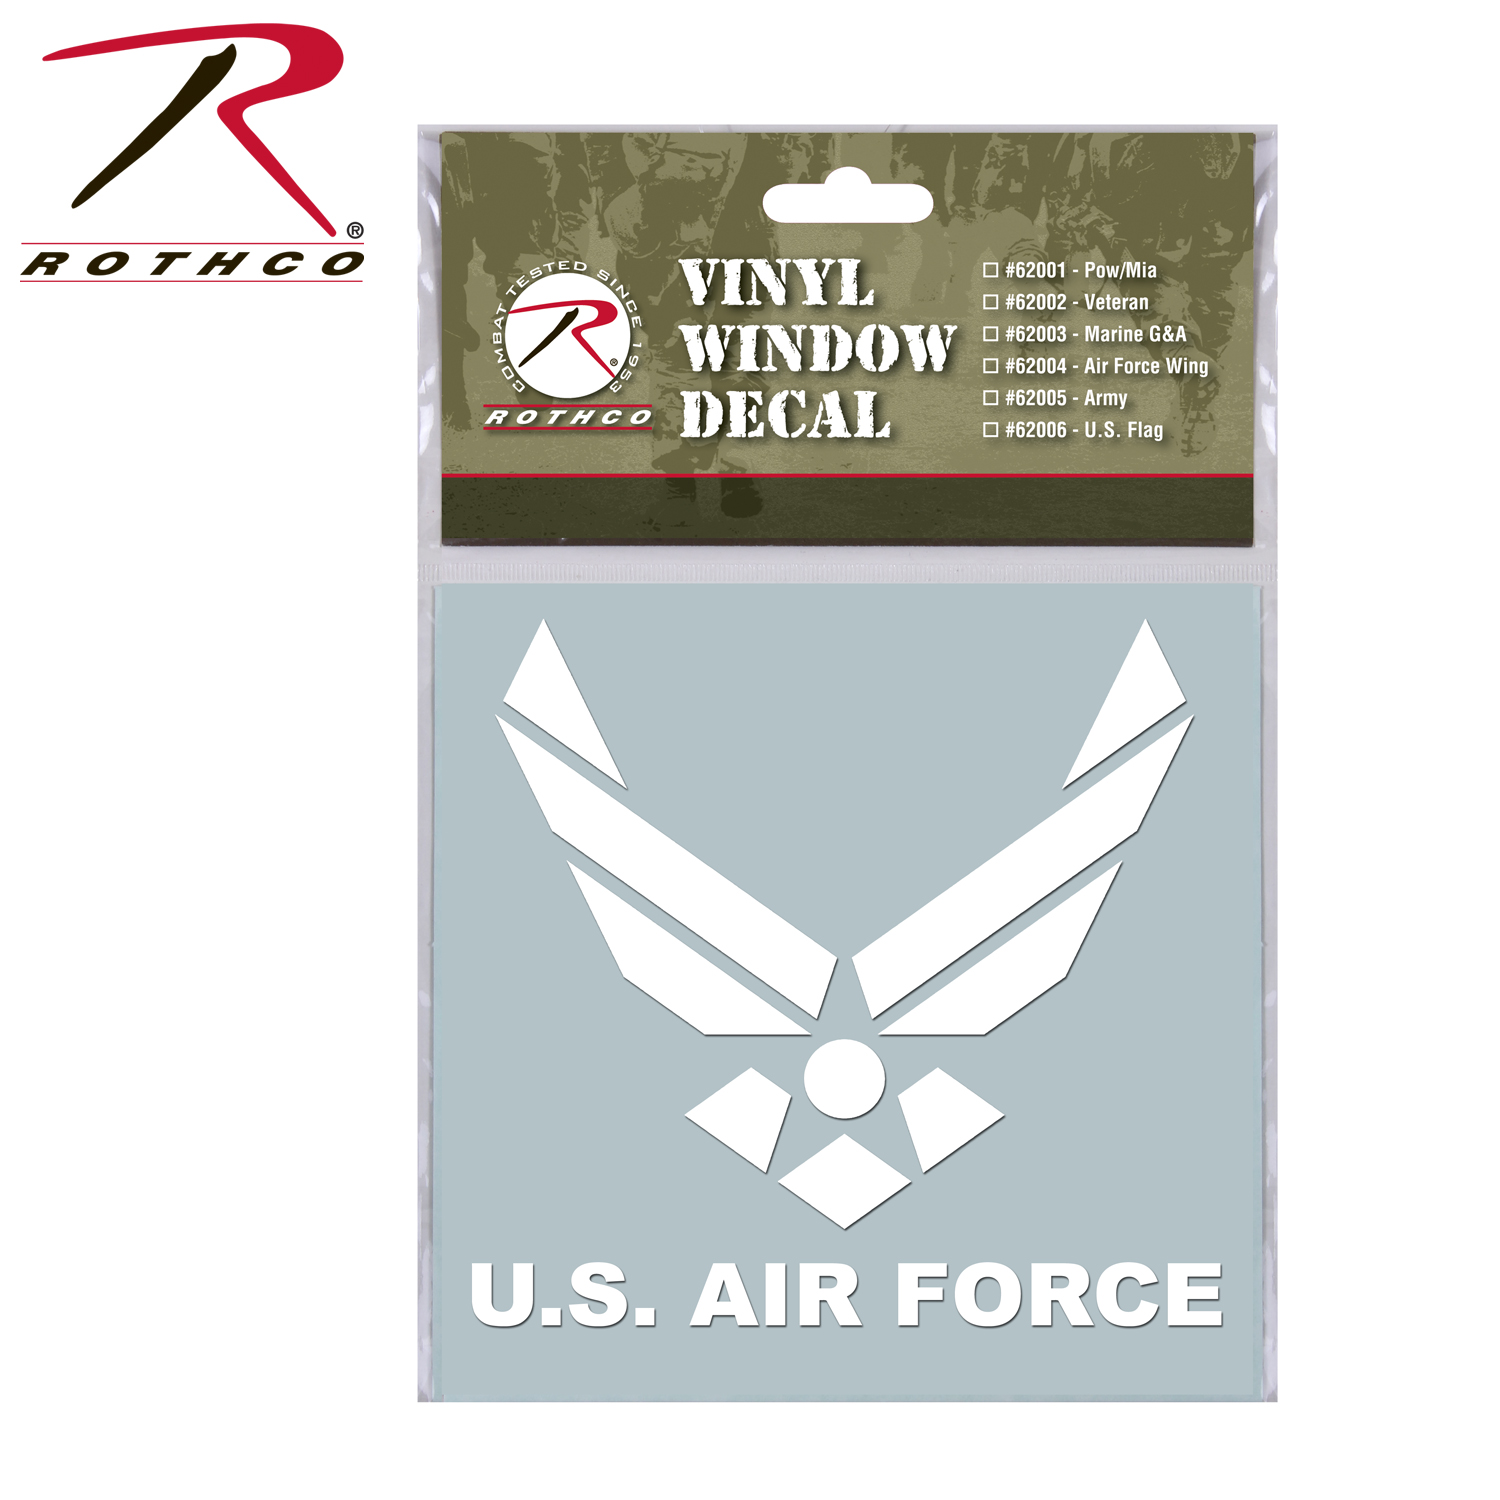 Vinyl Window Decals : Rothco military vinyl window decal